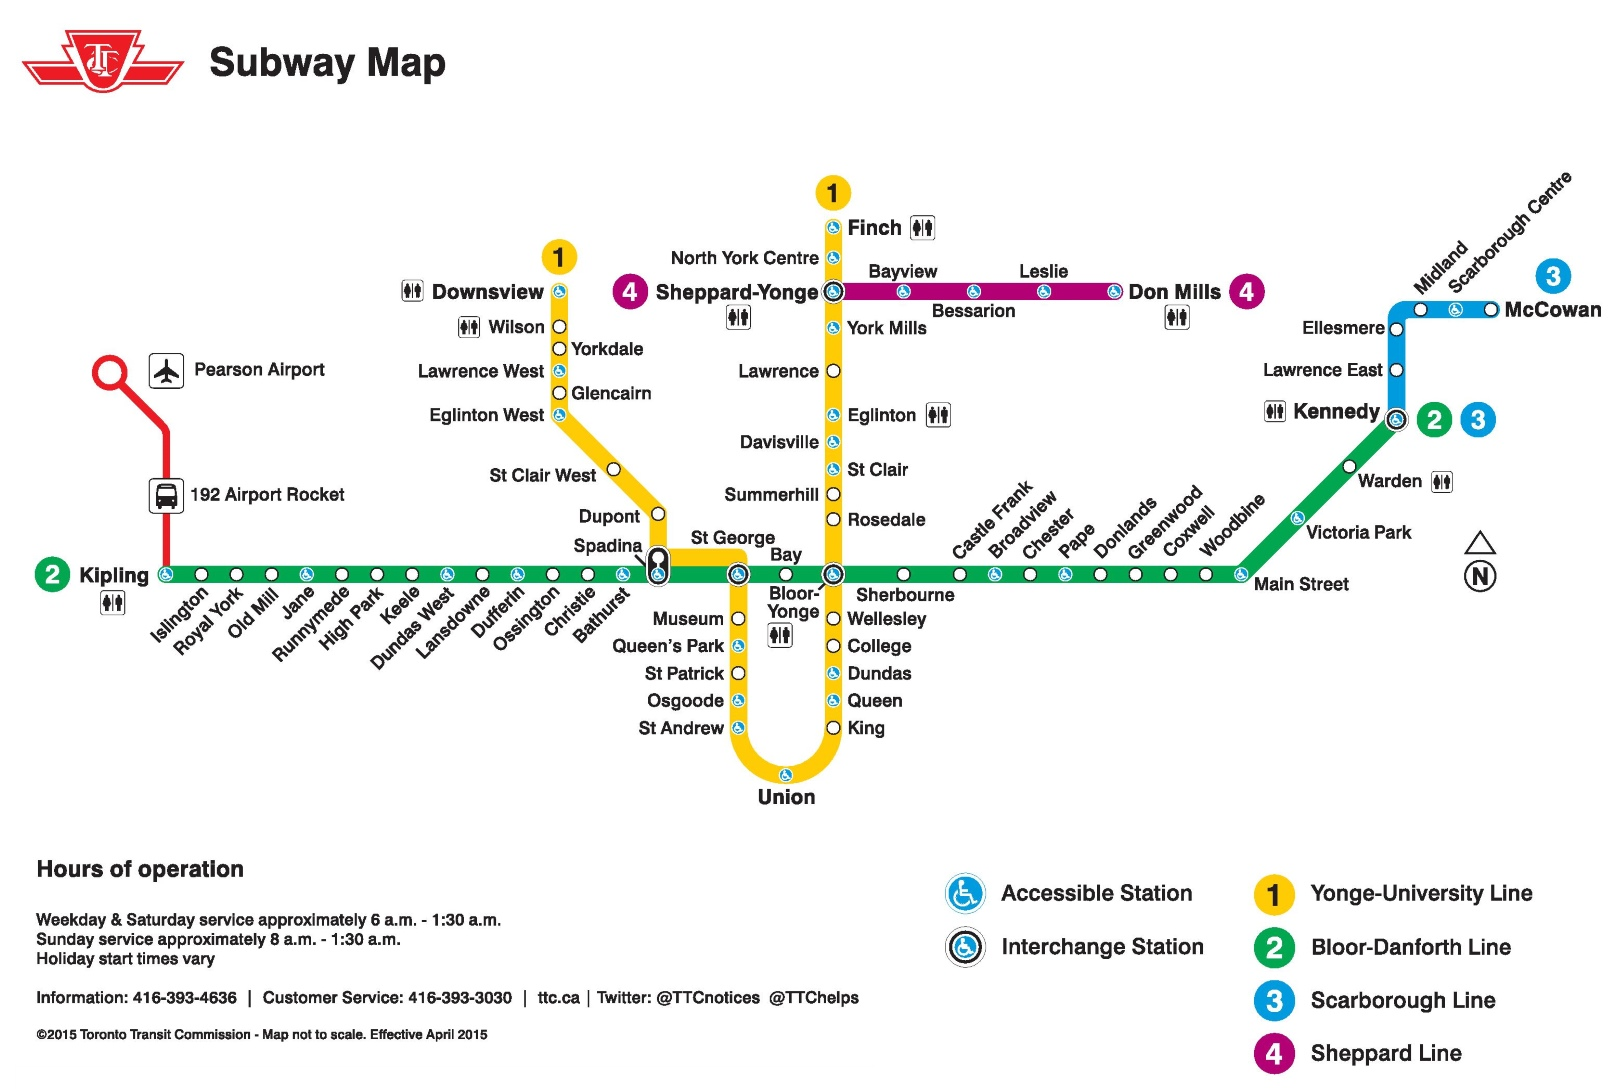 Montreal Subway Map Printable.Toronto Subway Map